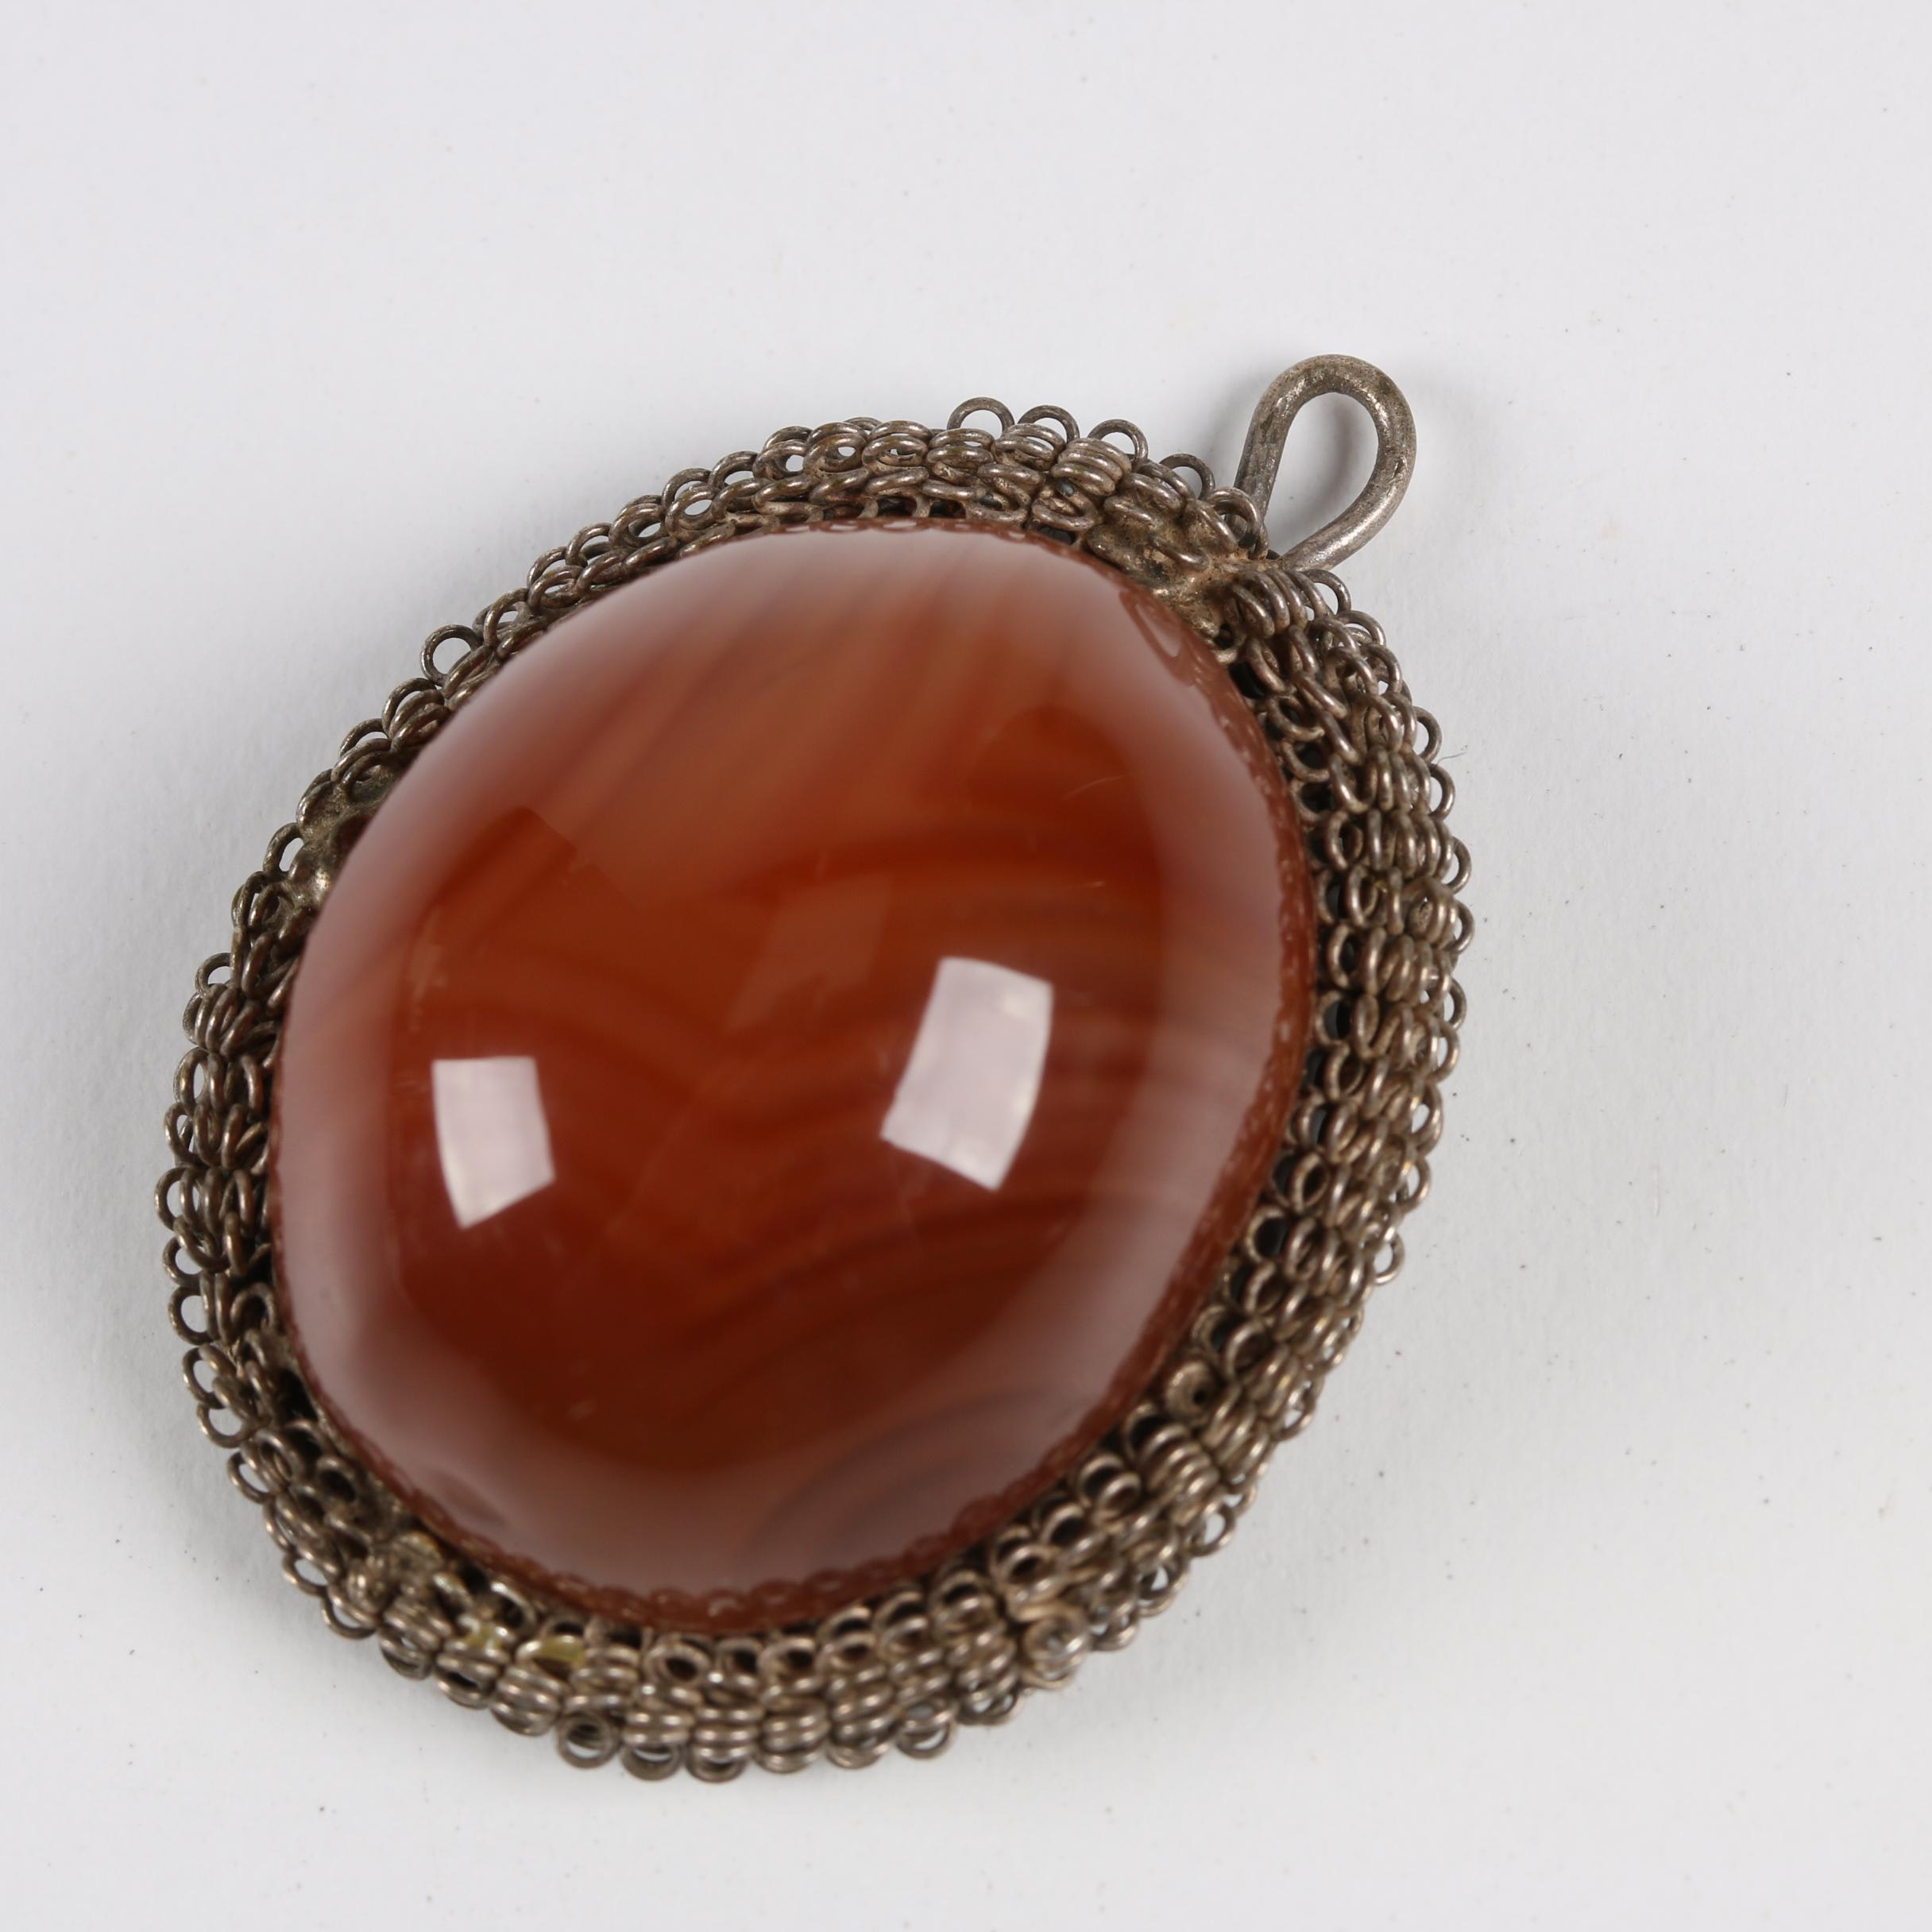 Chinese Metal Filigree Agate Cabochon Pendant, Qing Dynasty